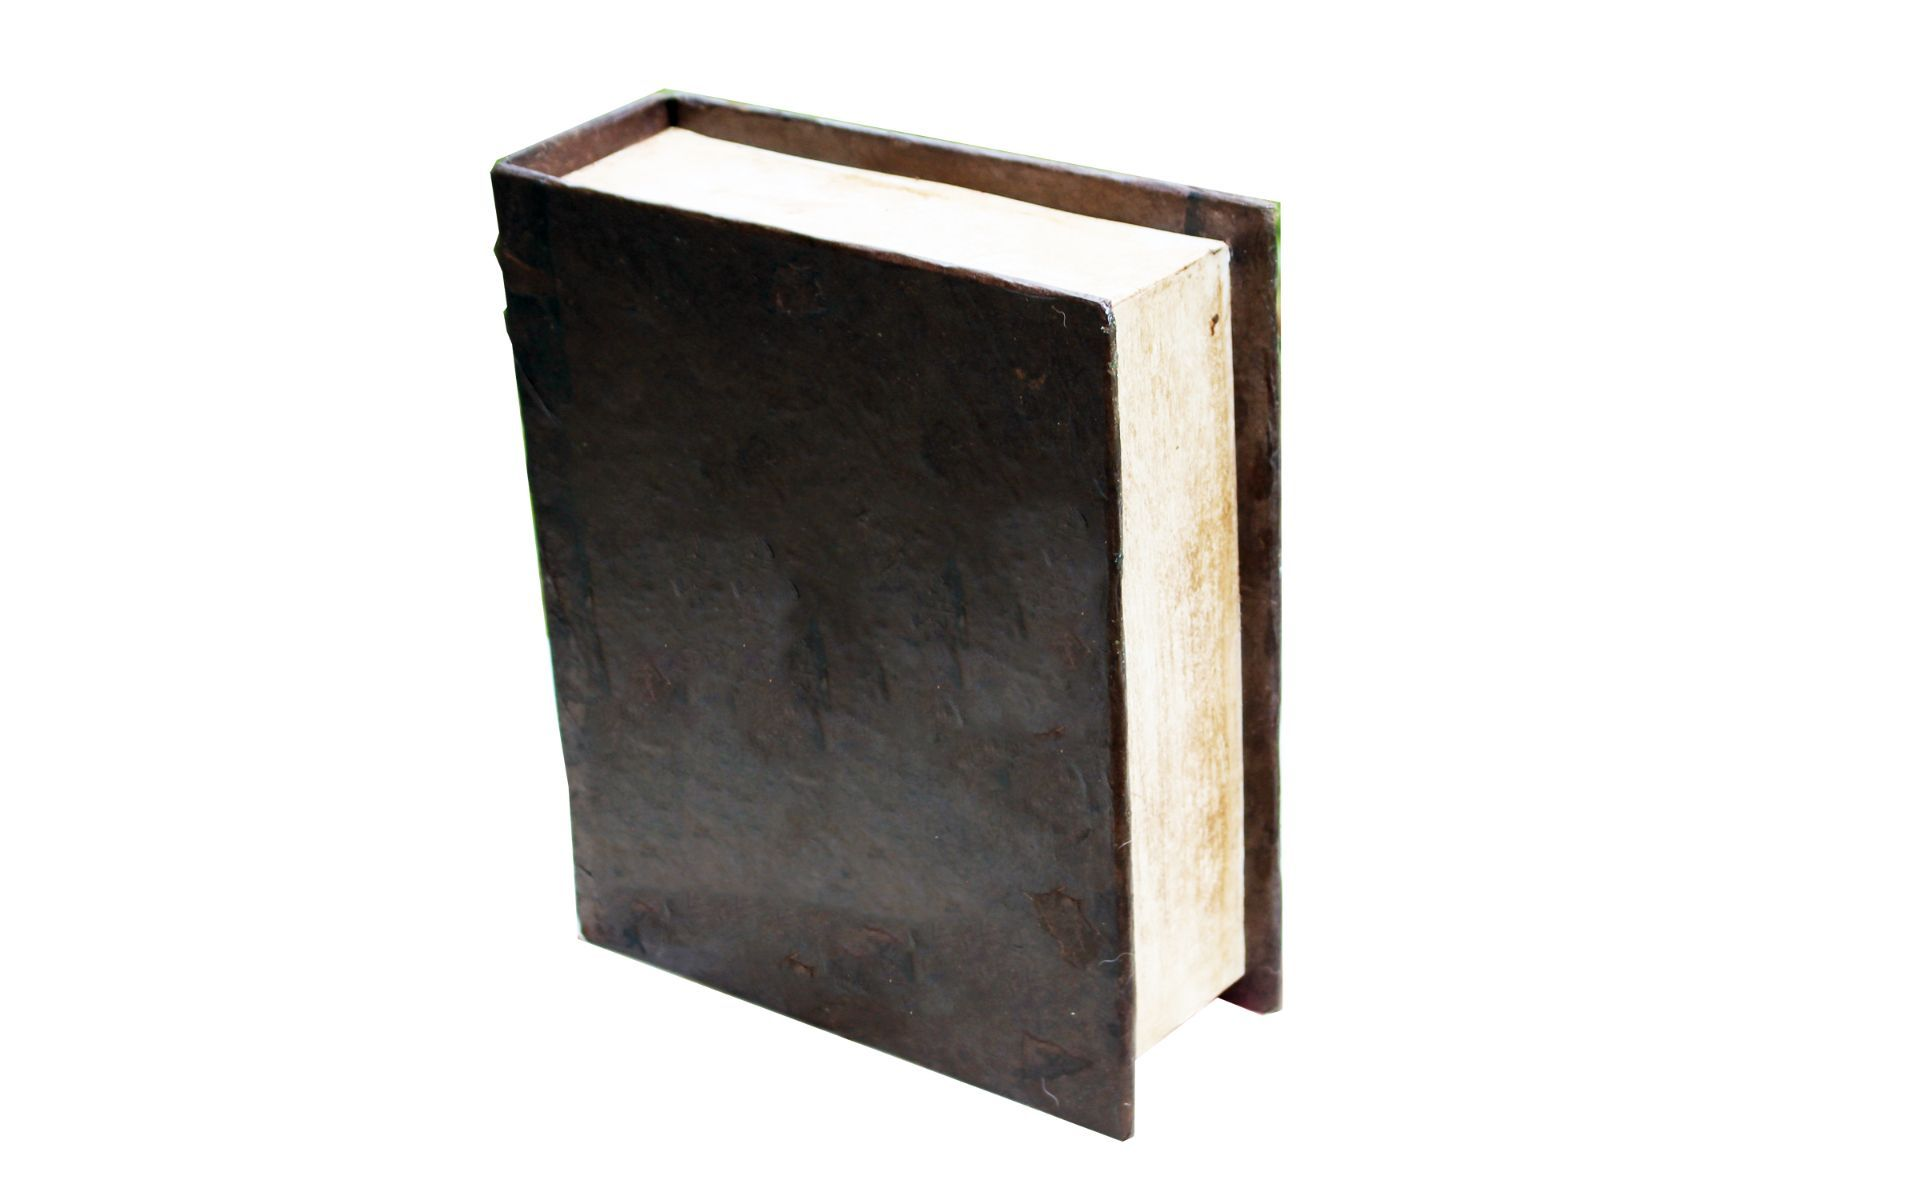 THE BOOK, a Full Size, Dark Brown, One of a Kind Cremation Art Urn for Human or Pet Ashes